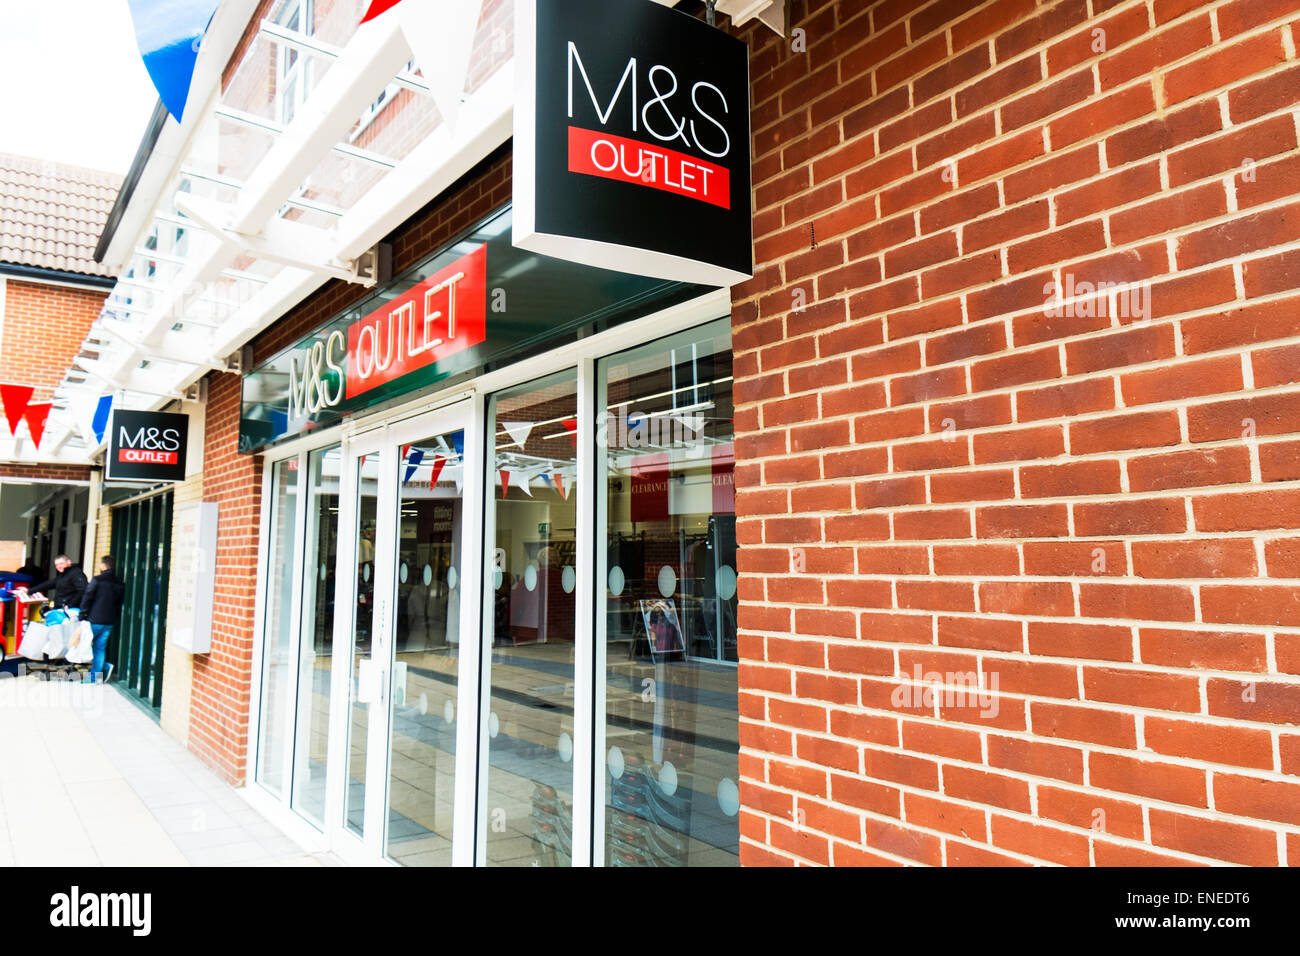 The Marks and Spencer outlet store in Bideford has announced that it will be closing. The store located at Affinity Devon, formerly known as Atlantic Village said that it would not be renewing its.